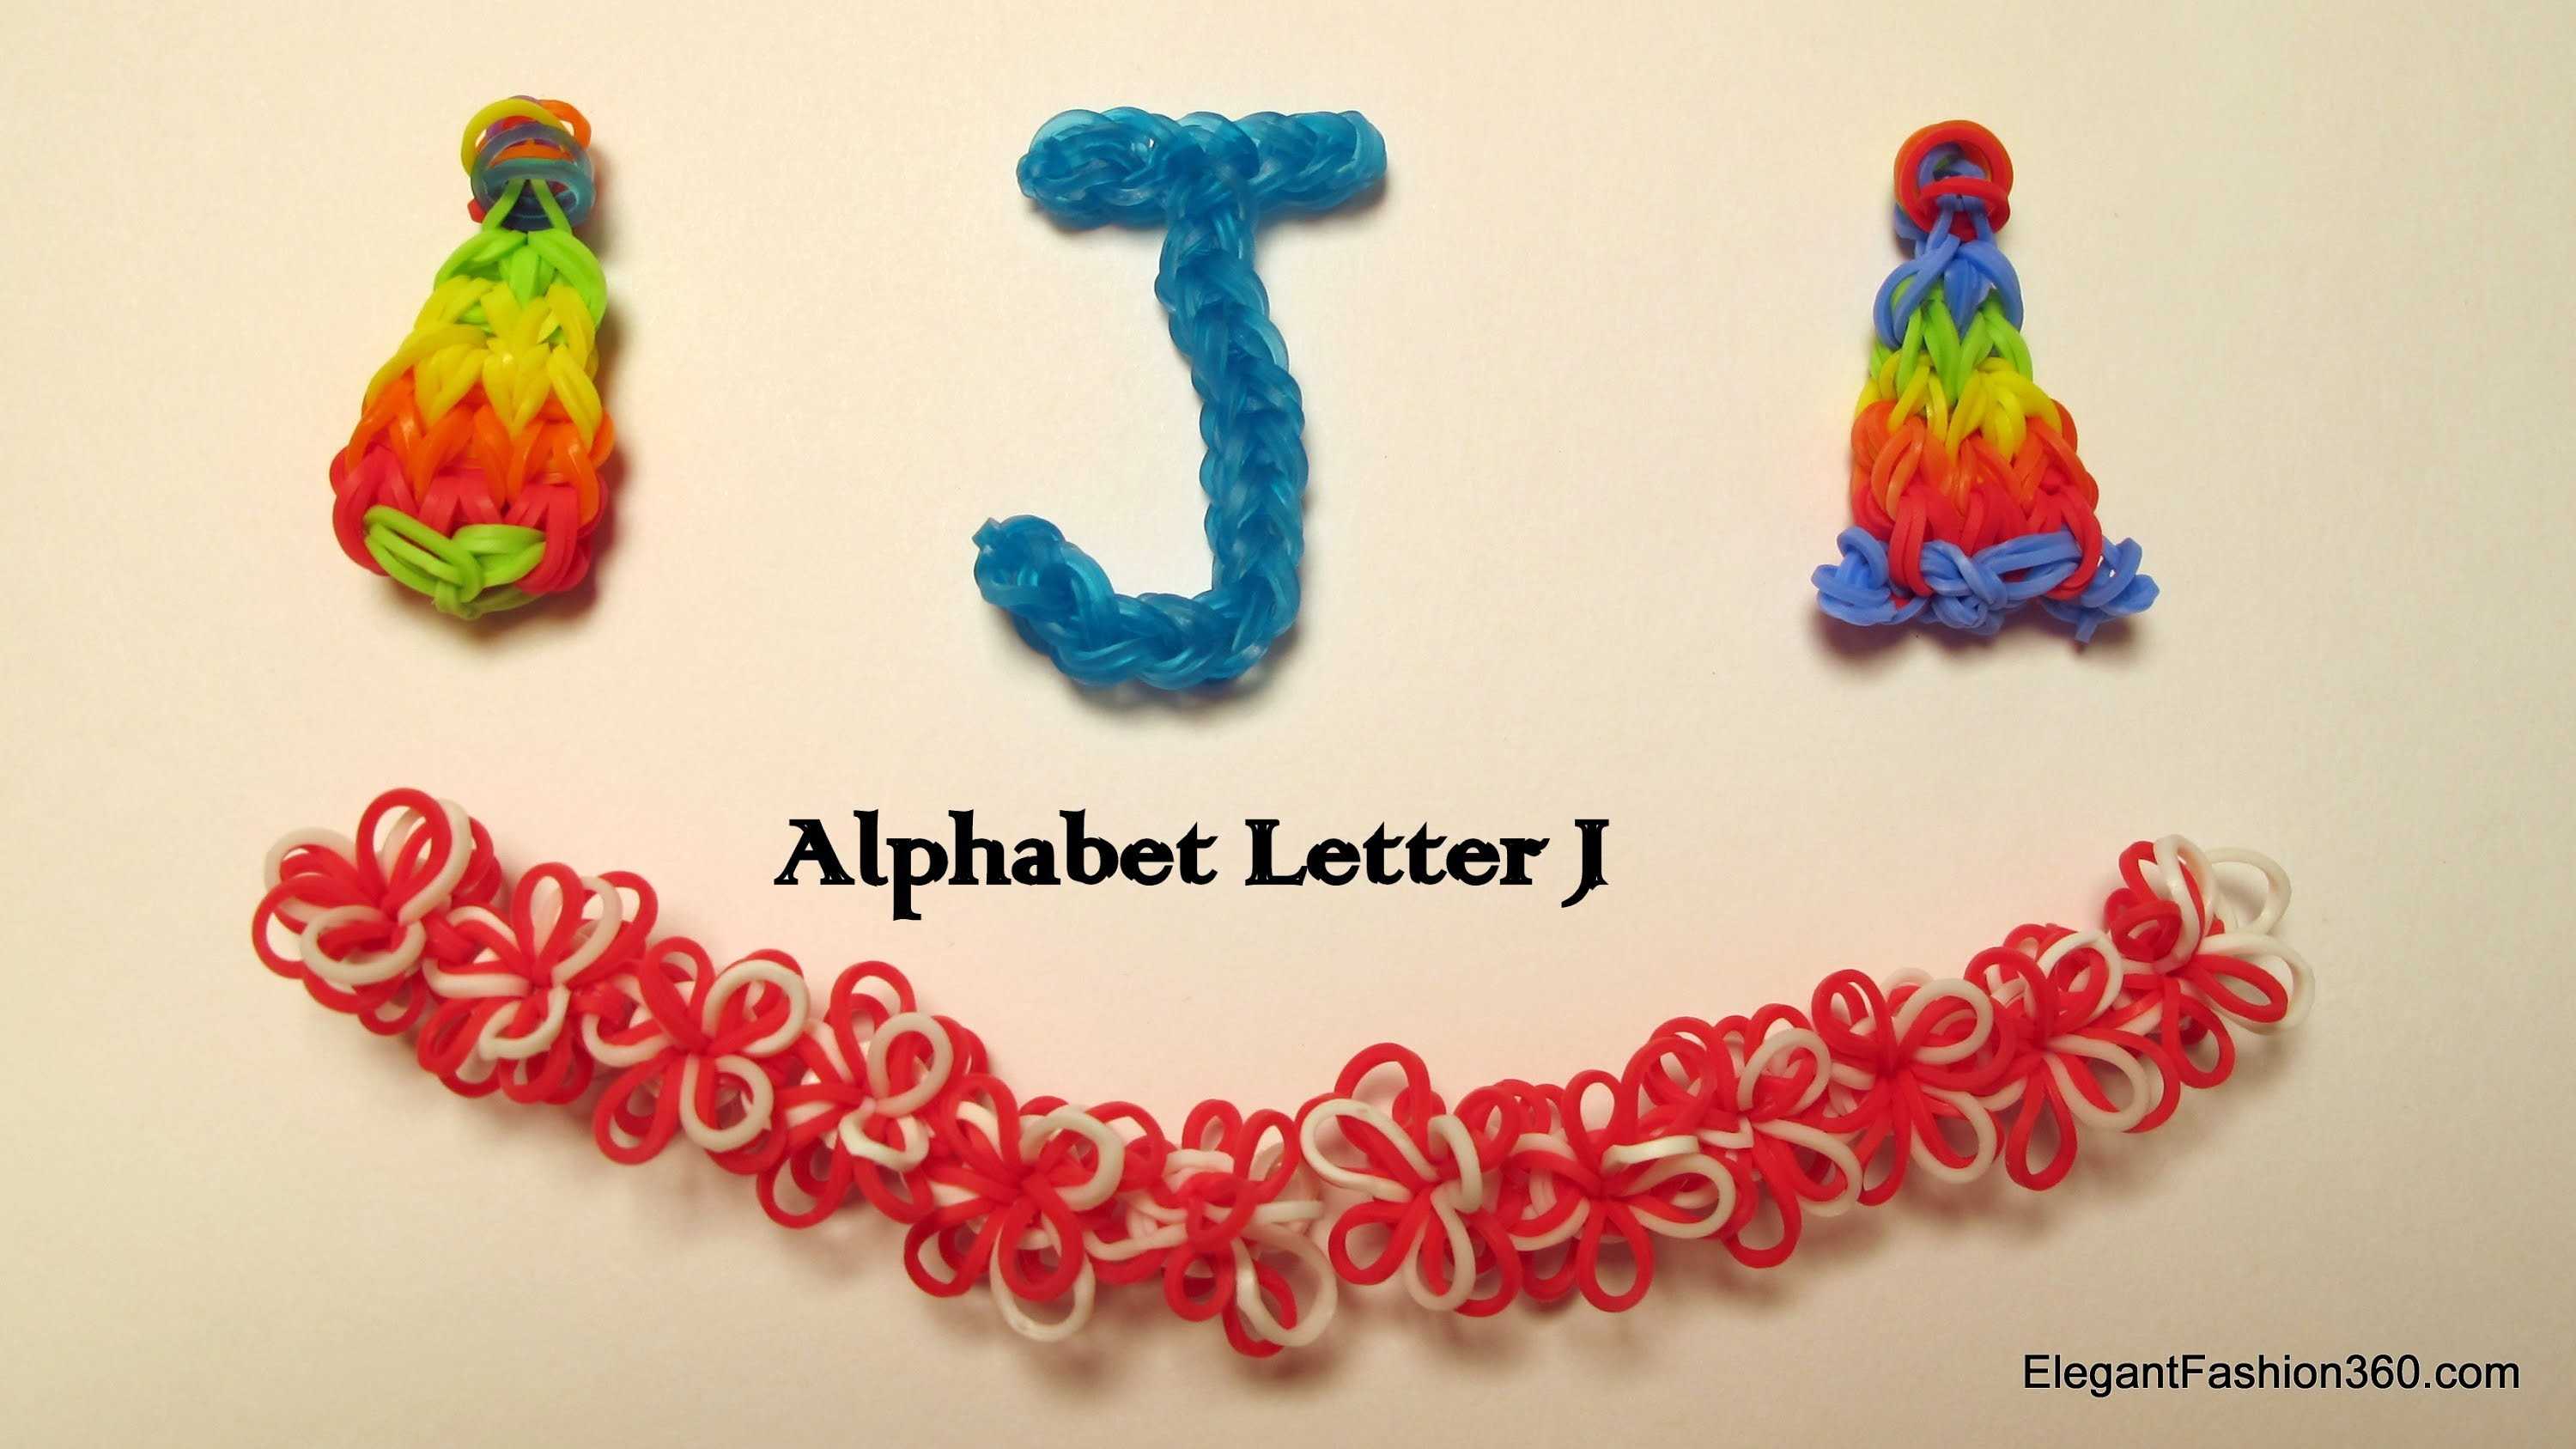 How to make alphabet letter J charm on rainbow loom